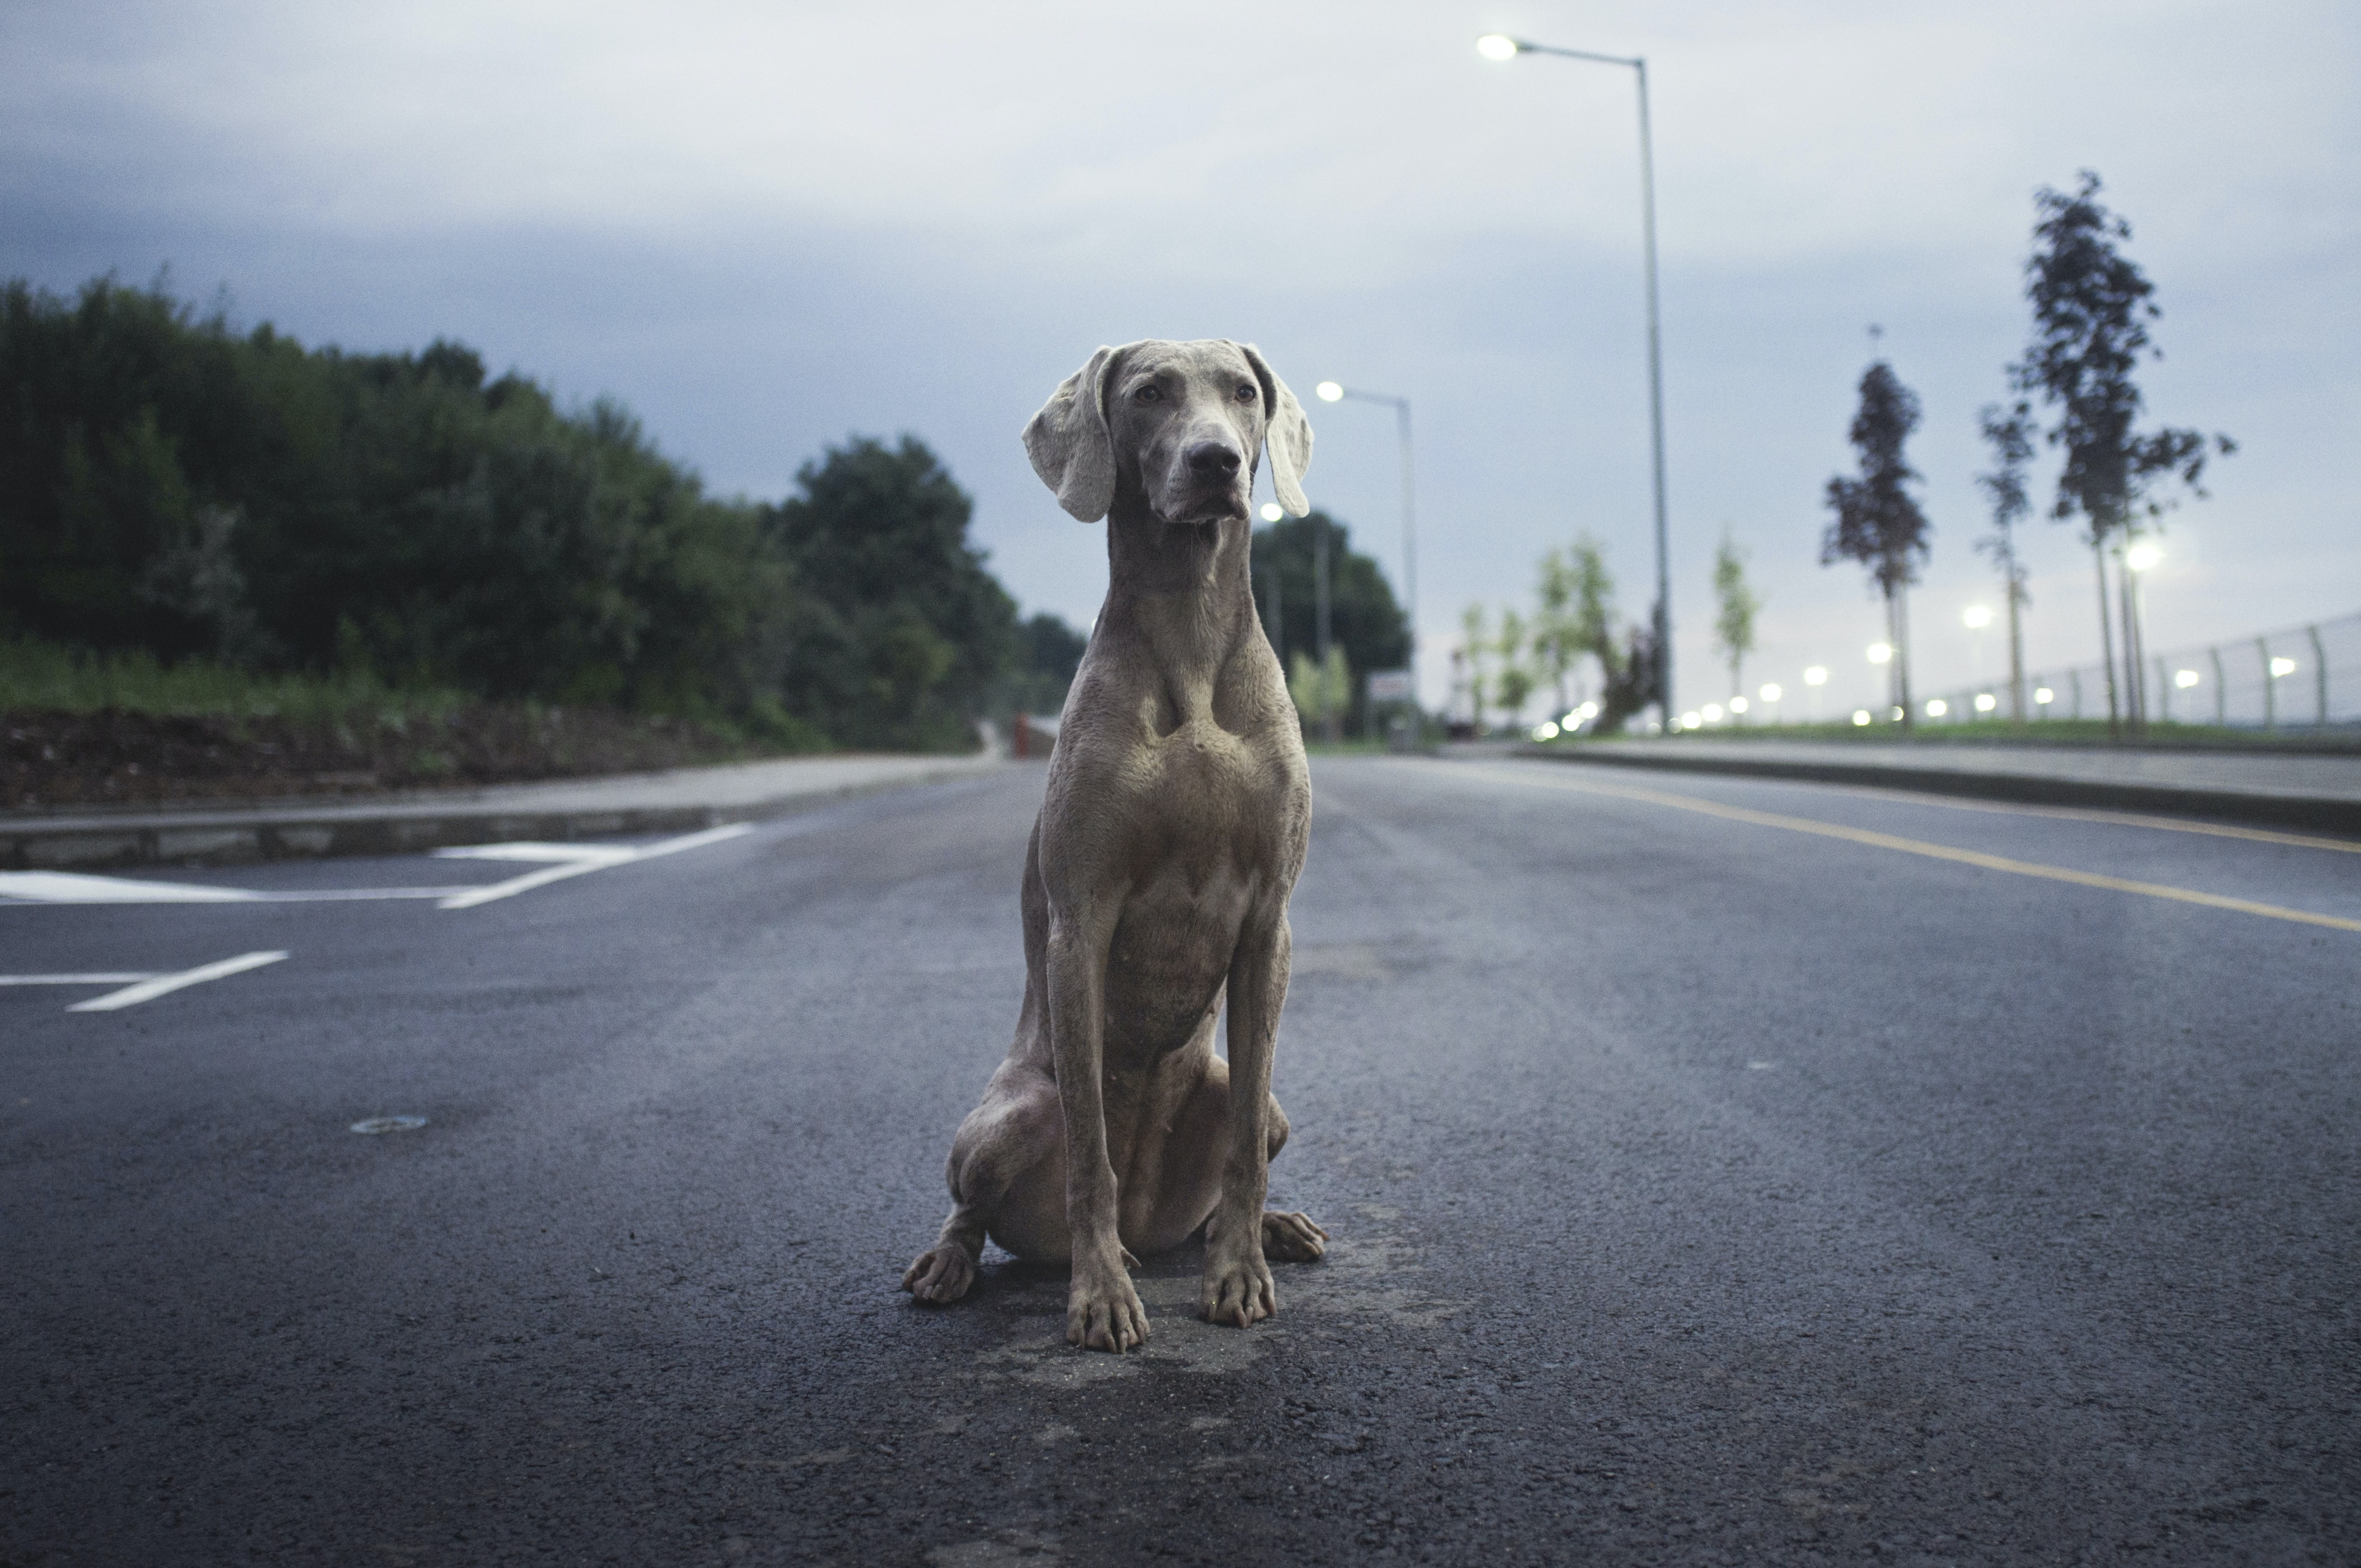 A watchful Weimaraner sitting on asphalt in the evening